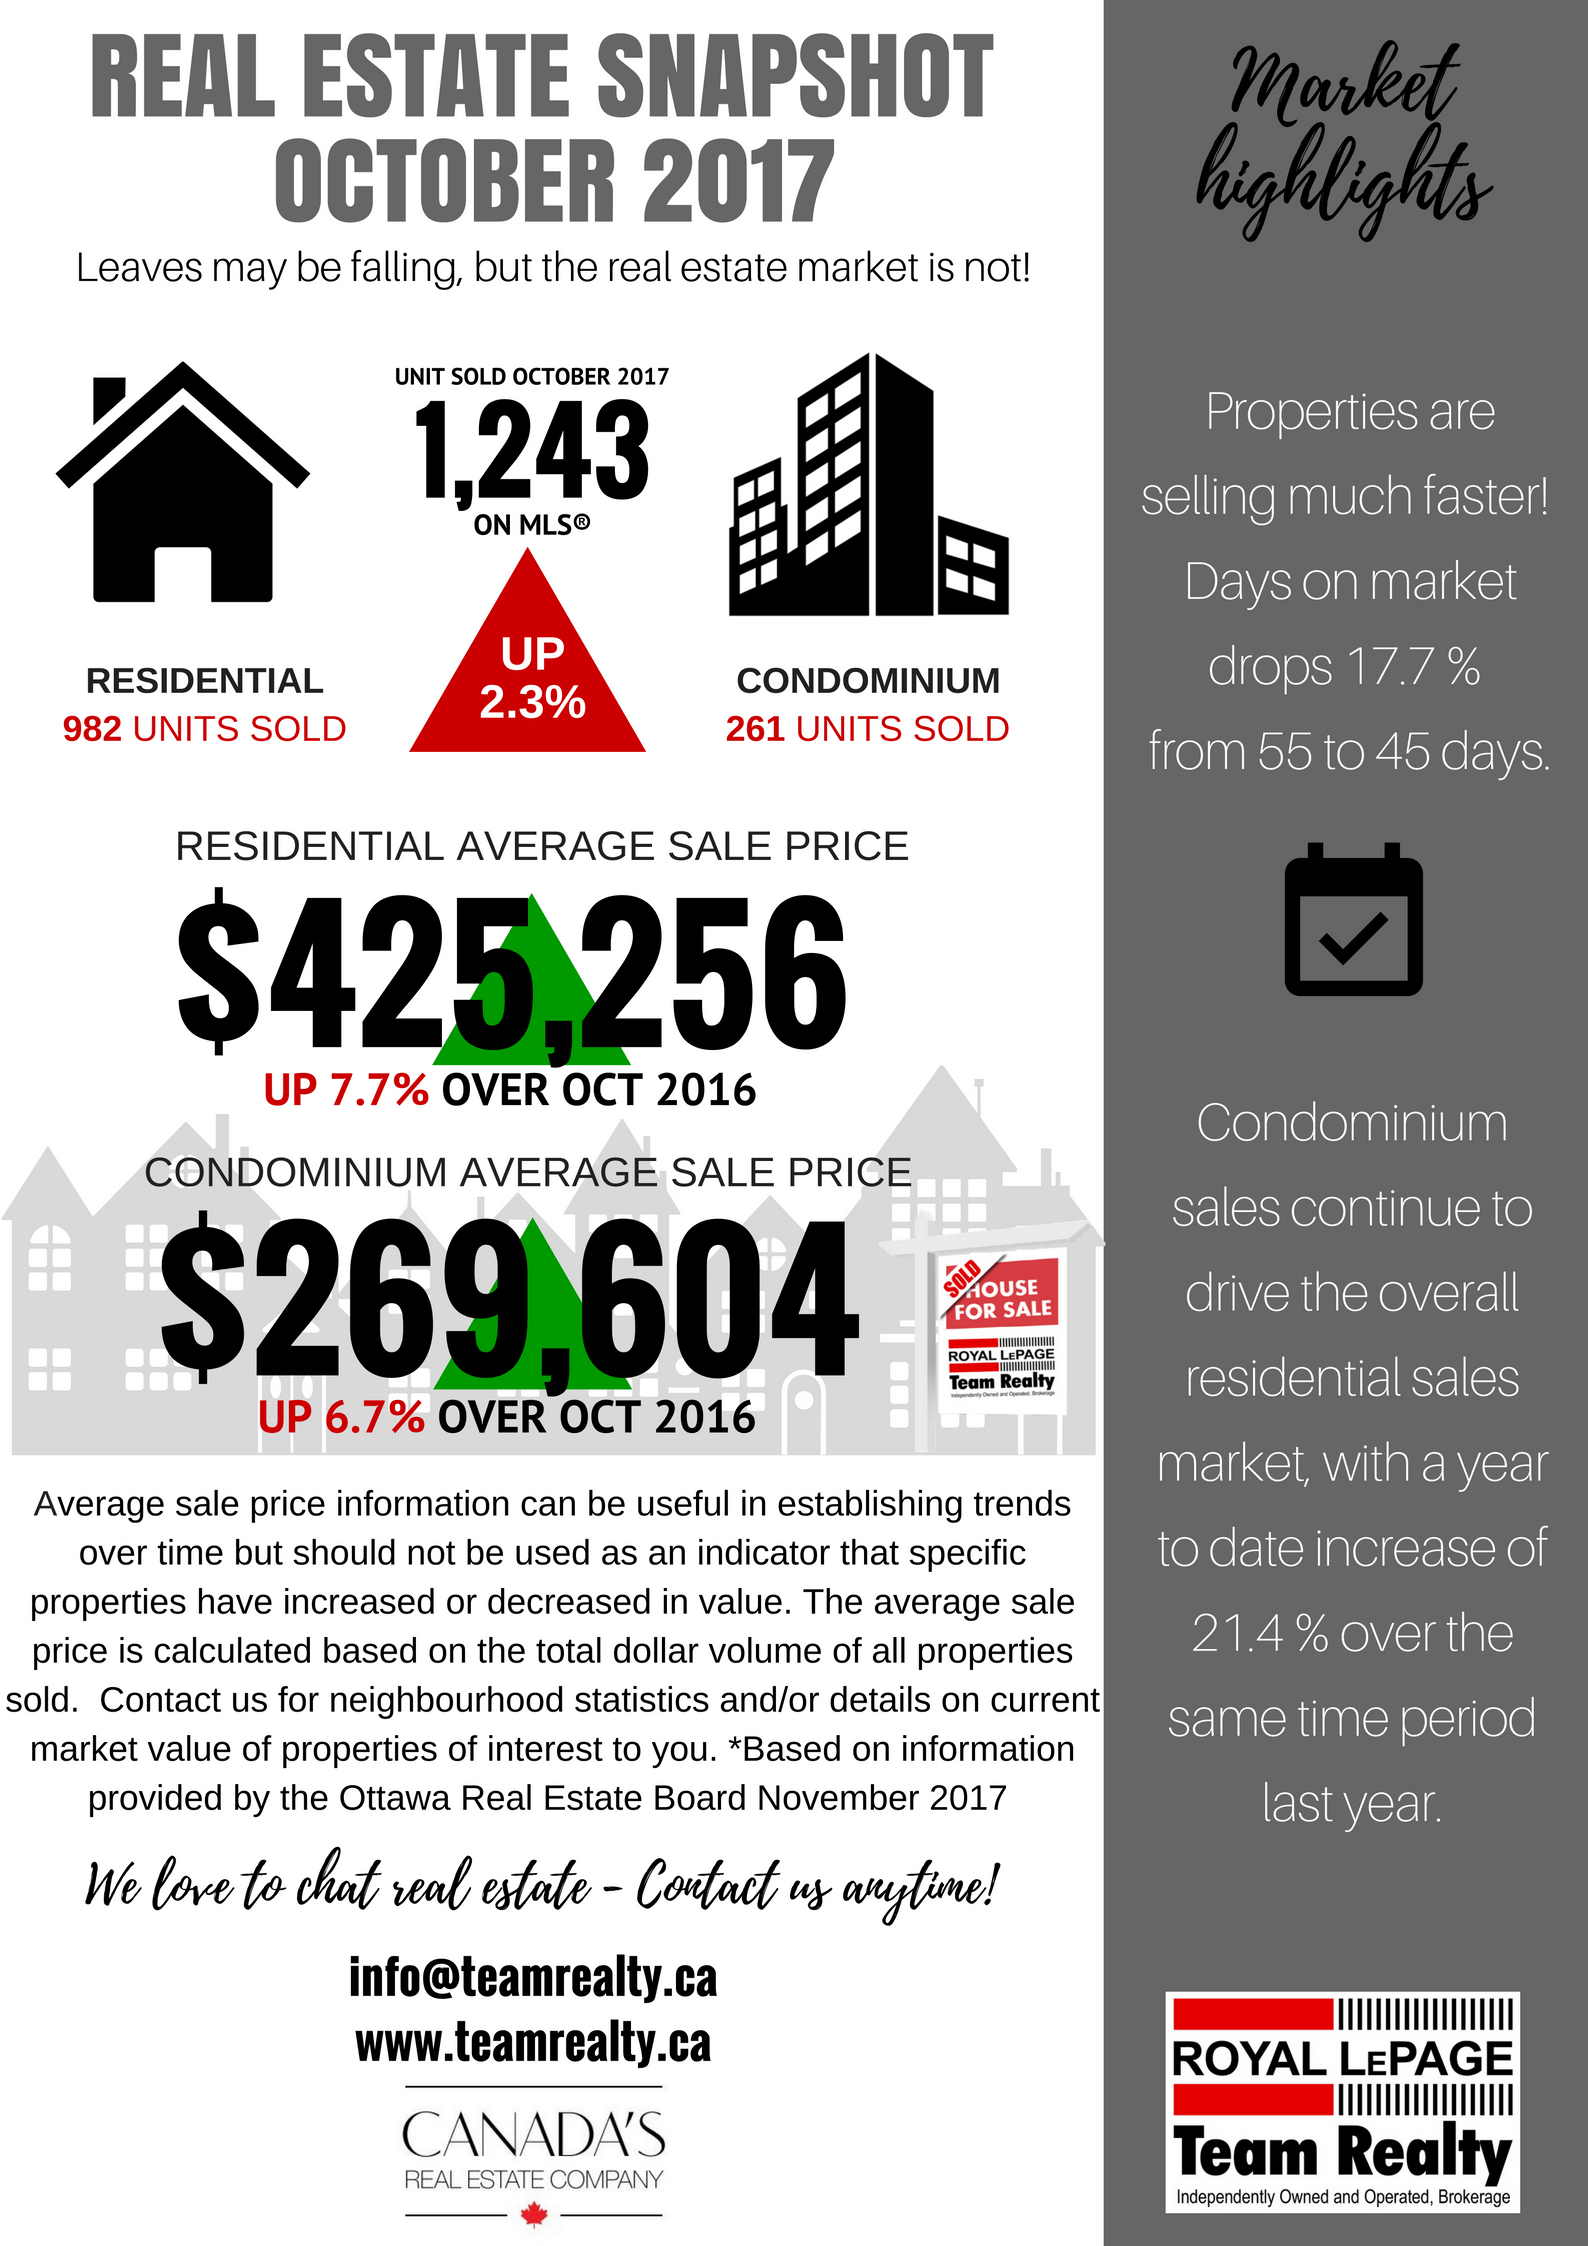 OCT 2017 Ottawa Real Estate Market snapshot